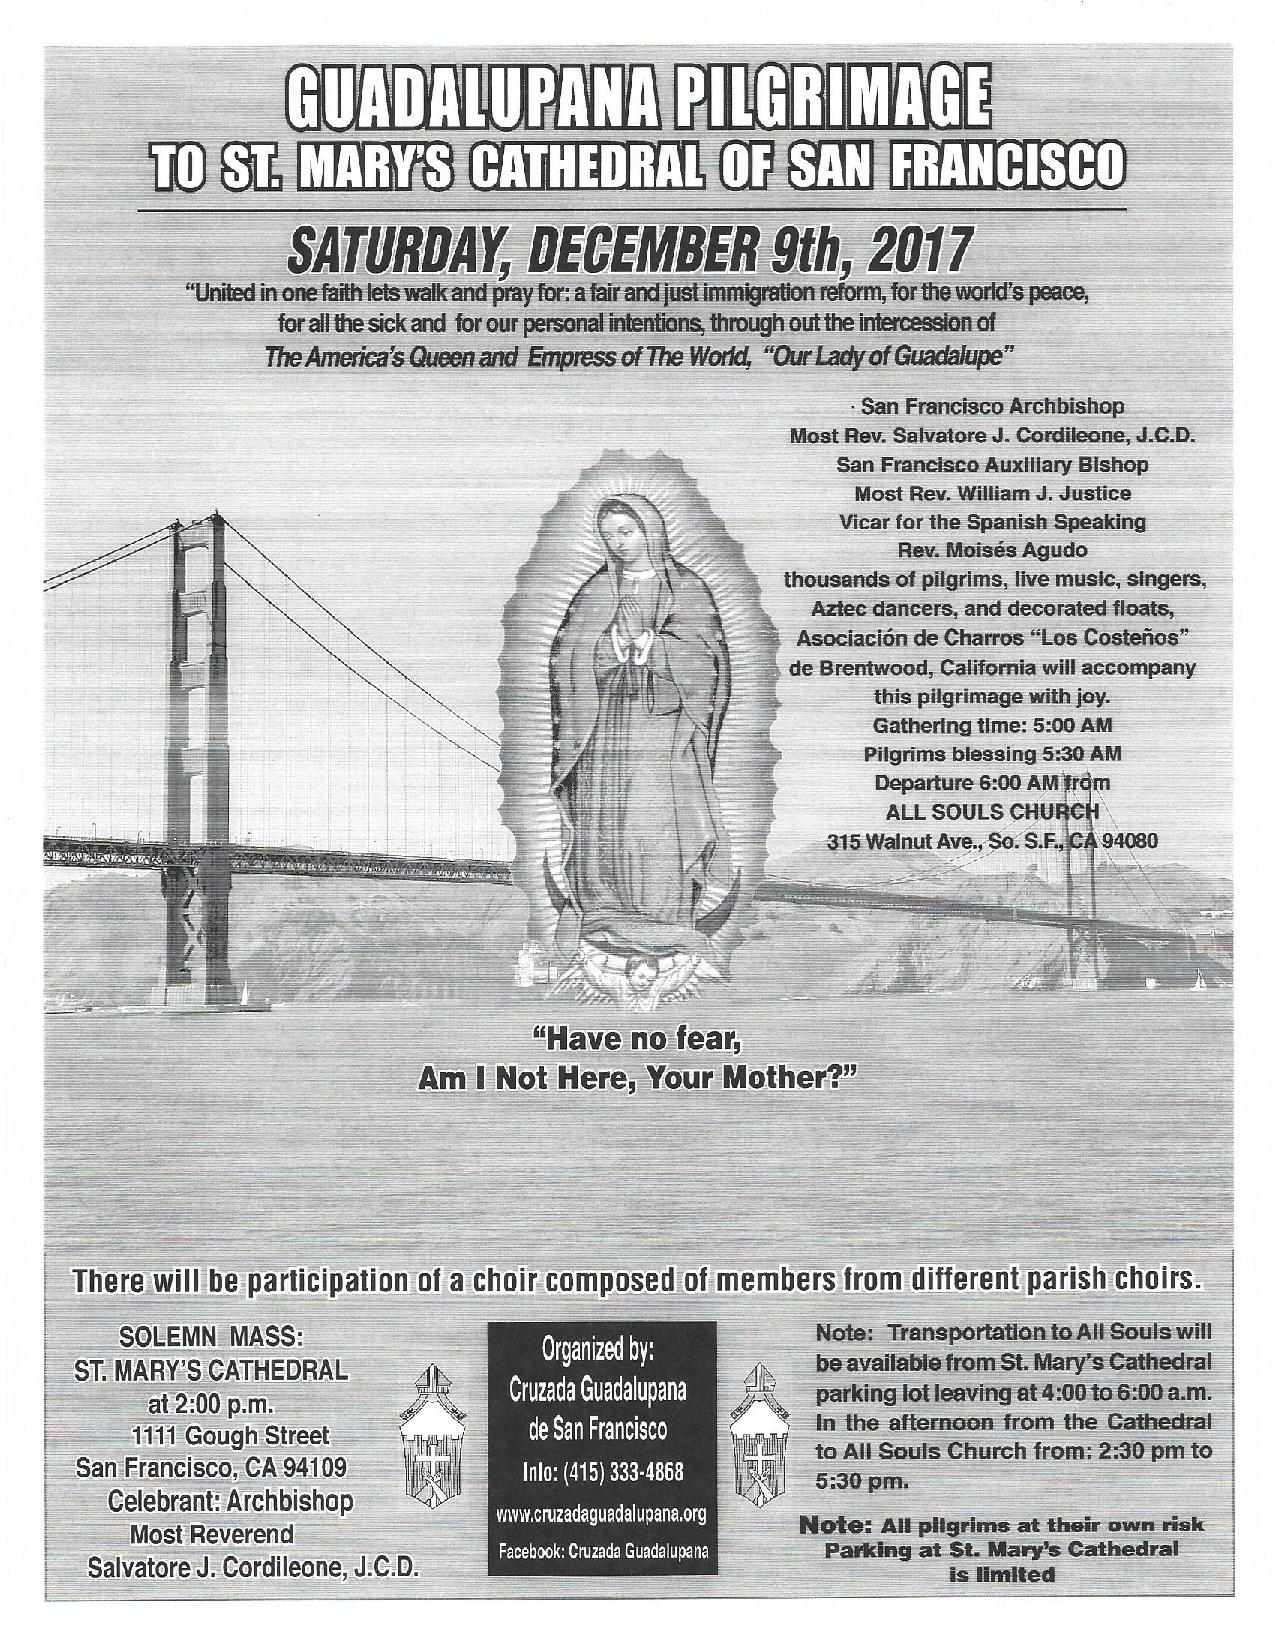 Annual Guadalupe Pilgrimage Saturday December 9th: Starts at All Souls Church at 5am